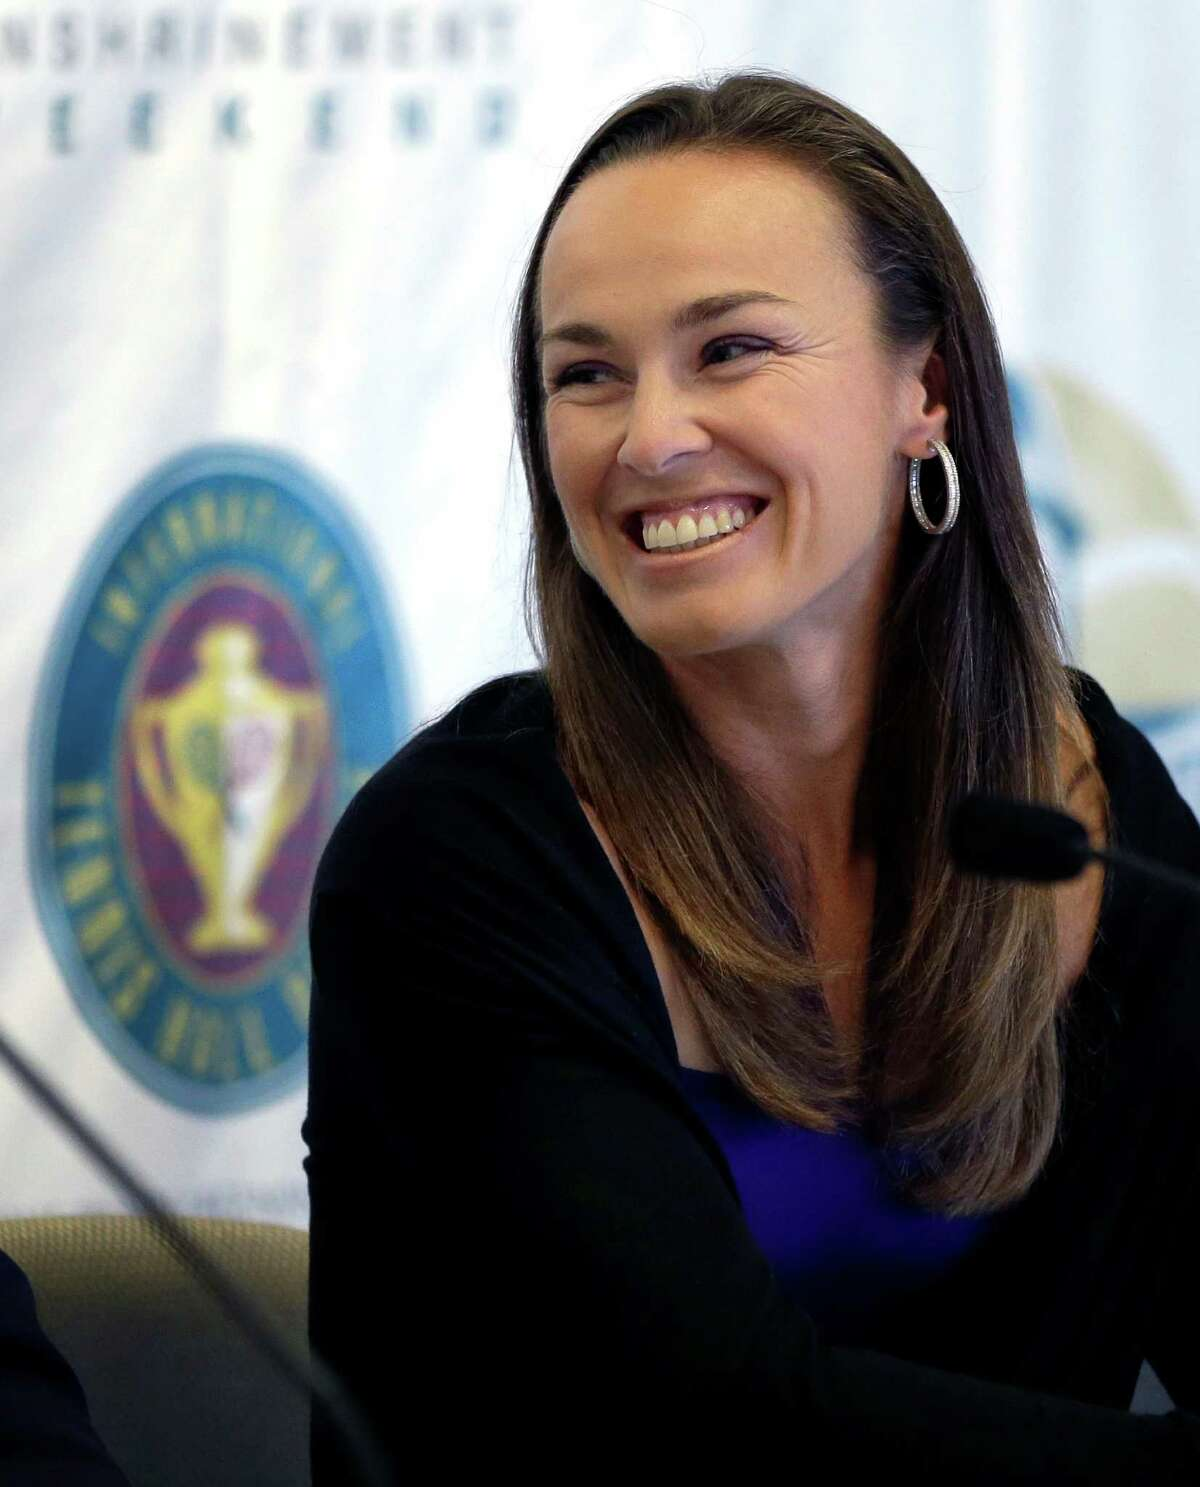 Tennis great Martina Hingis, of Switzerland, smiles during a news conference prior to her enshrinement into the International Tennis Hall of Fame in Newport, R.I. on Saturday, July 13, 2013. (AP Photo/Elise Amendola) ORG XMIT: RIEA101